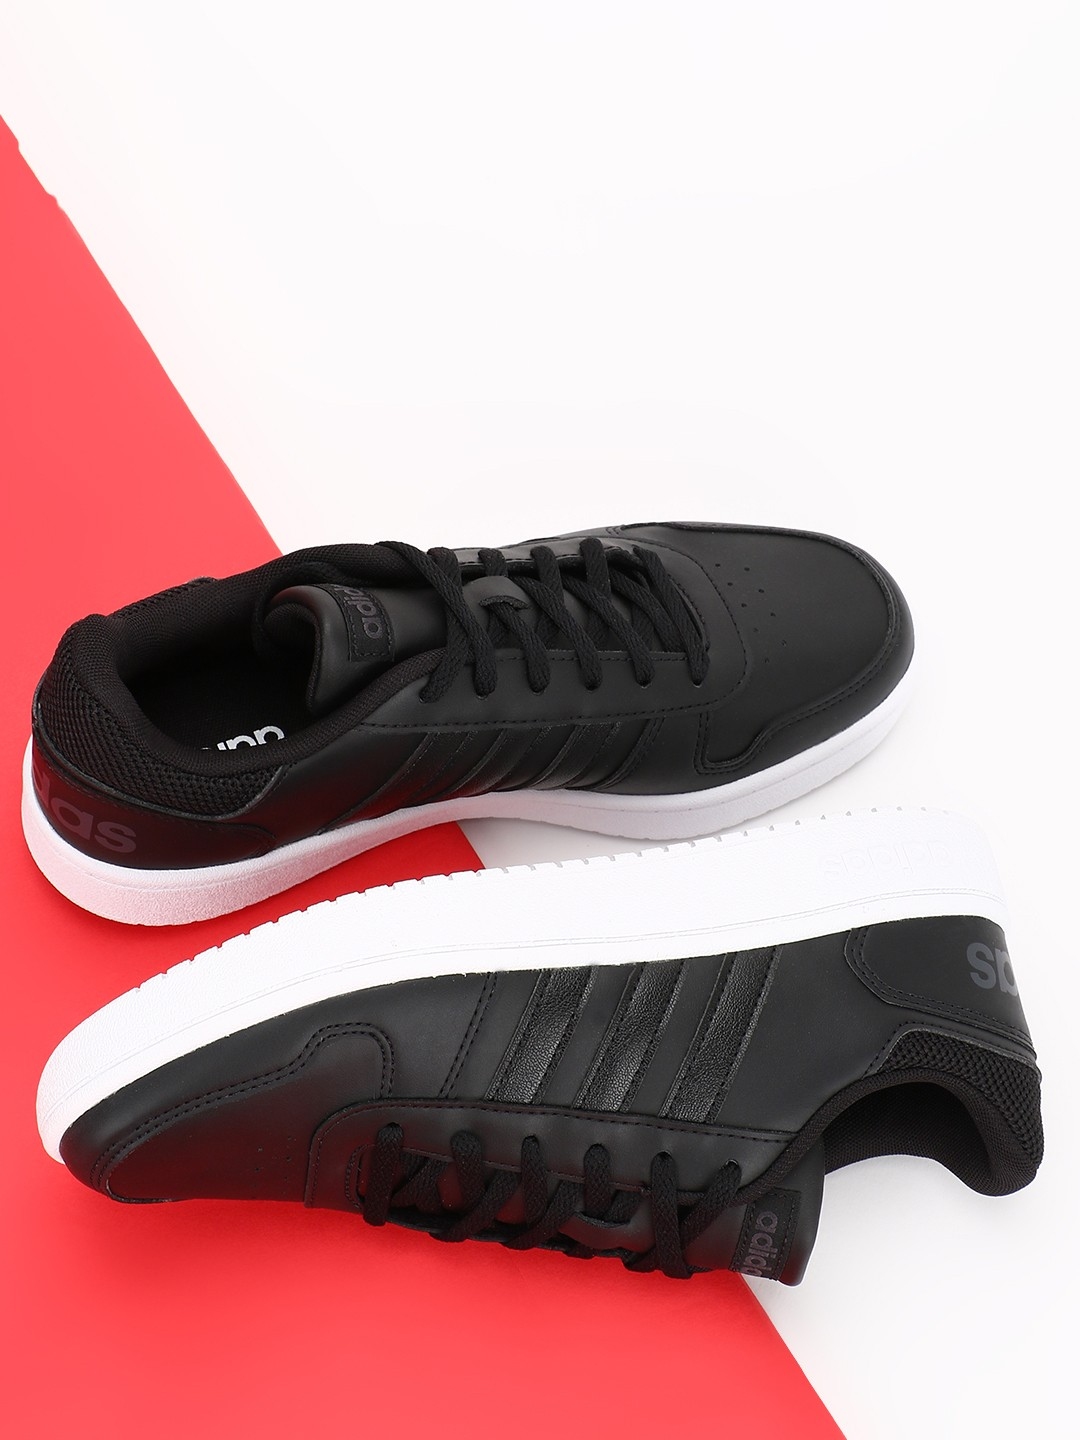 Adidas Black Hoops 2.0 Shoes 1